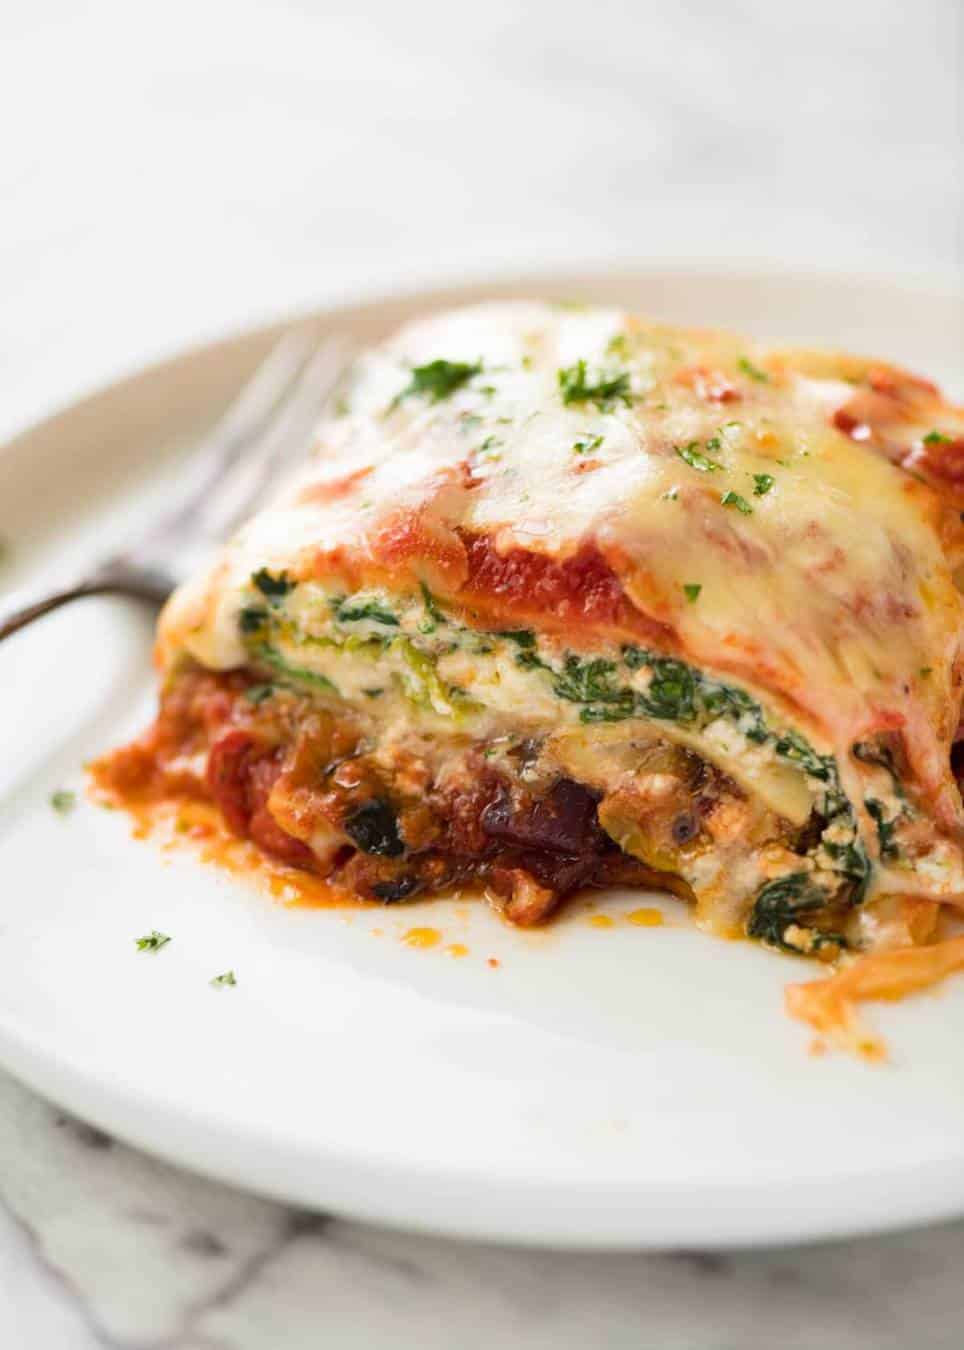 A wonderful Vegetarian Lasagna with layers of roasted vegetables, tomato sauce, and a spinach ricotta filling. www.recipetineats.com